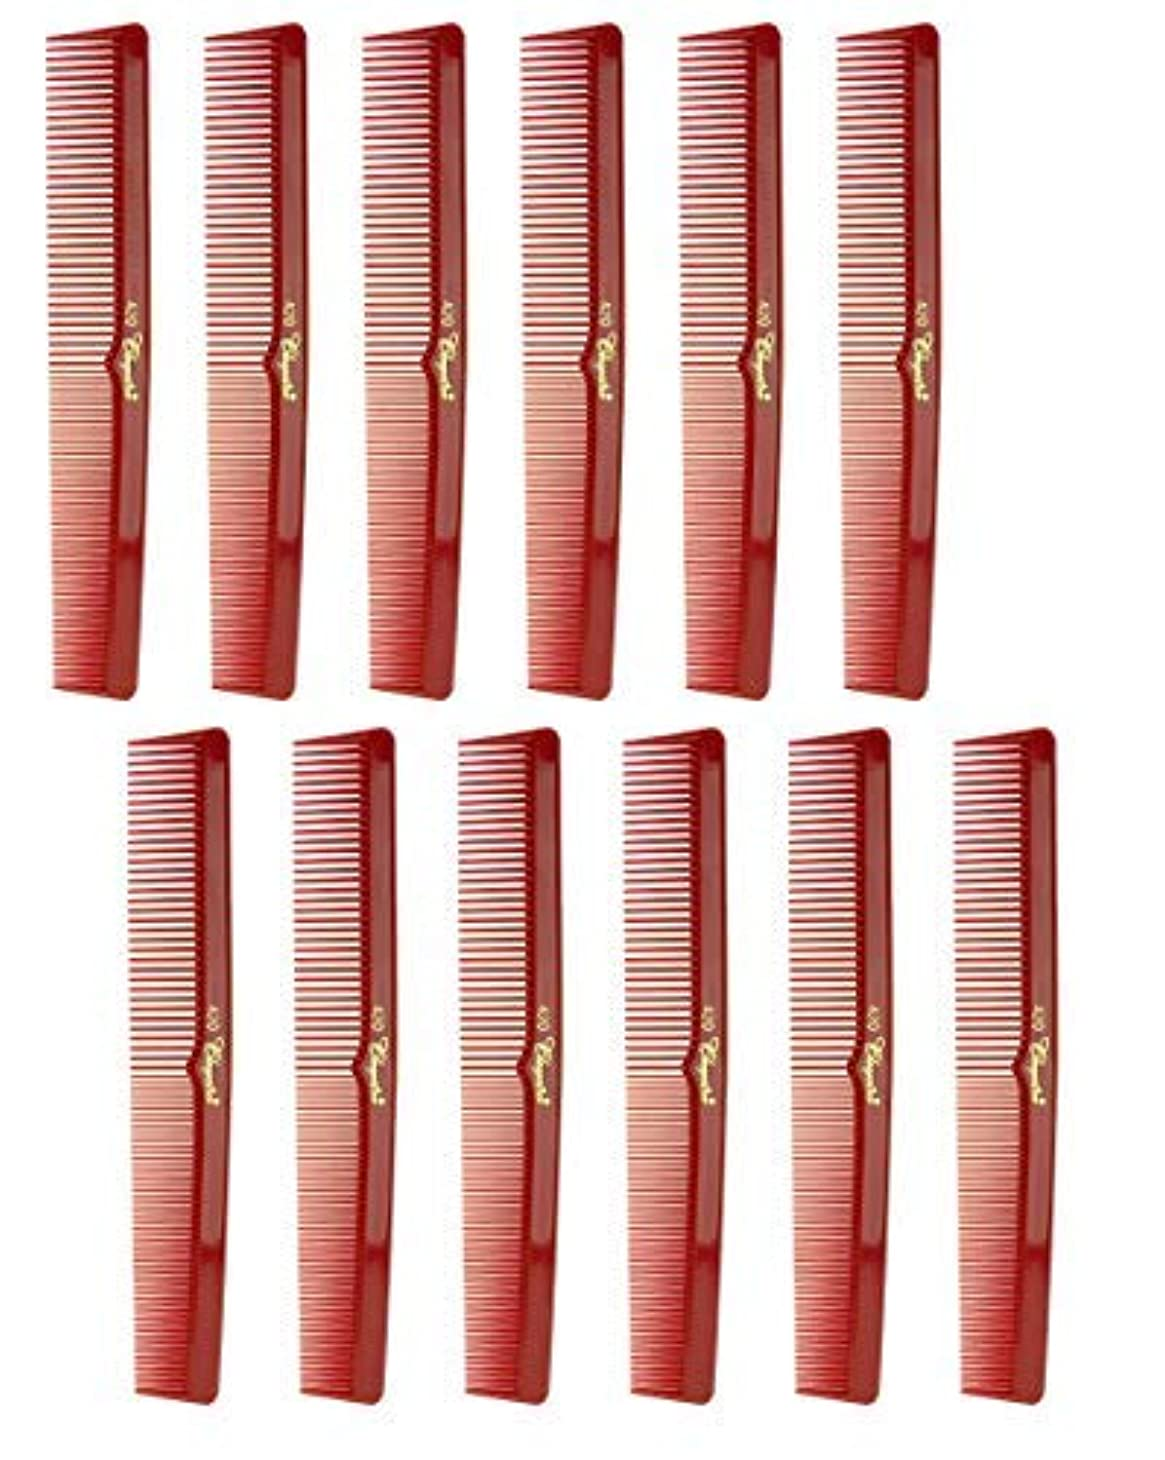 7 Inch Hair Cutting Comb. Barber's & Hairstylist Combs. Red. 1 DZ. [並行輸入品]